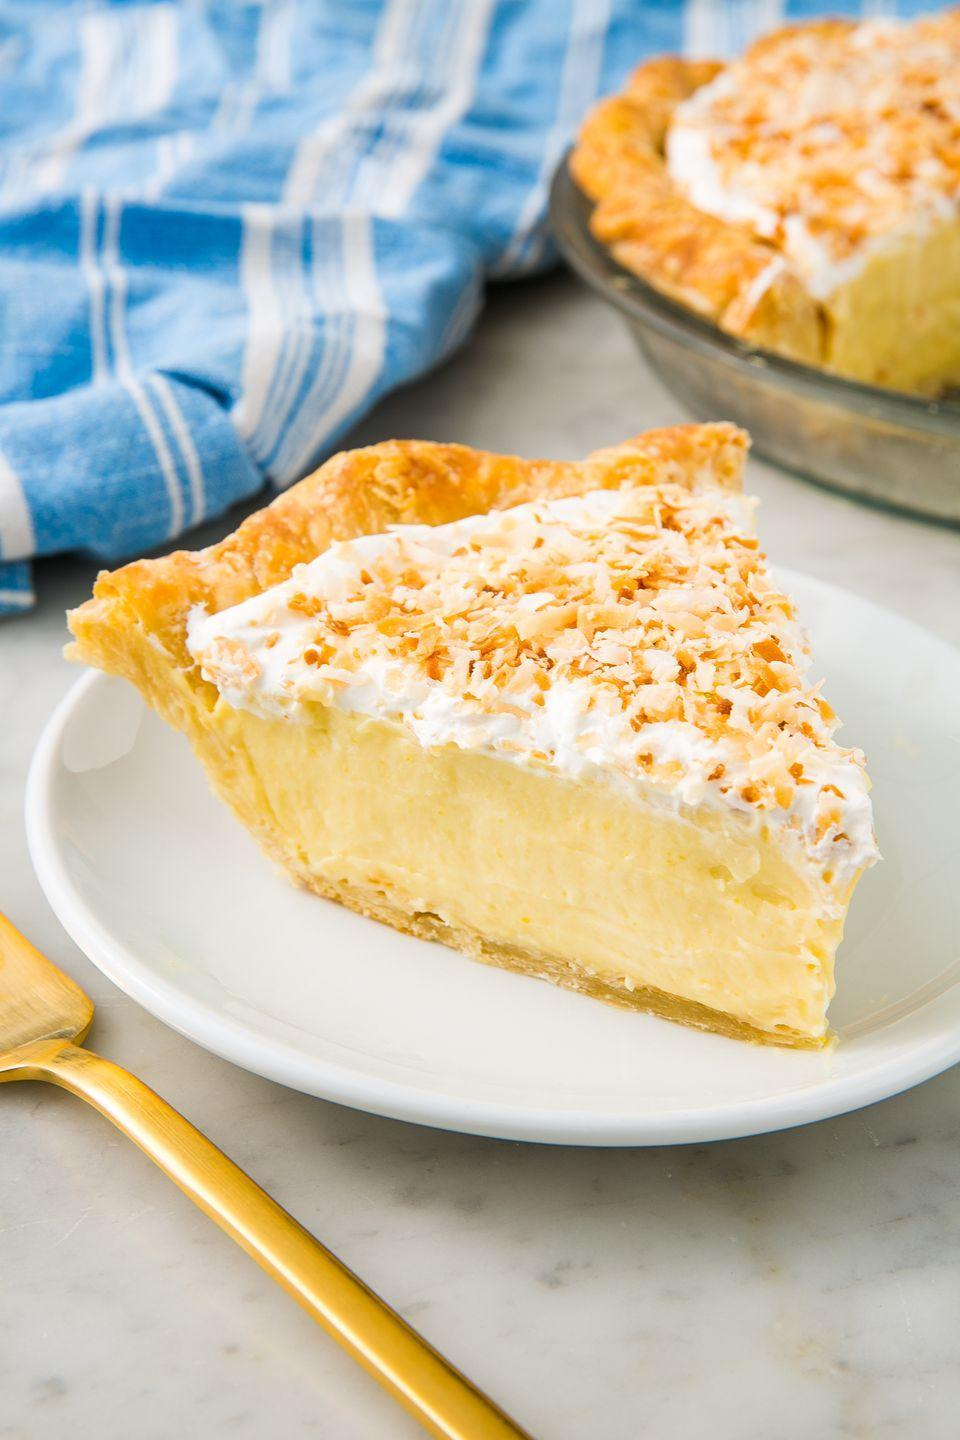 "<p>Actual heaven. </p><p>Get the recipe from <a href=""https://www.delish.com/cooking/recipe-ideas/recipes/a23297/coconut-cream-pie-recipe-del1014/"" rel=""nofollow noopener"" target=""_blank"" data-ylk=""slk:Delish"" class=""link rapid-noclick-resp"">Delish</a>. </p>"